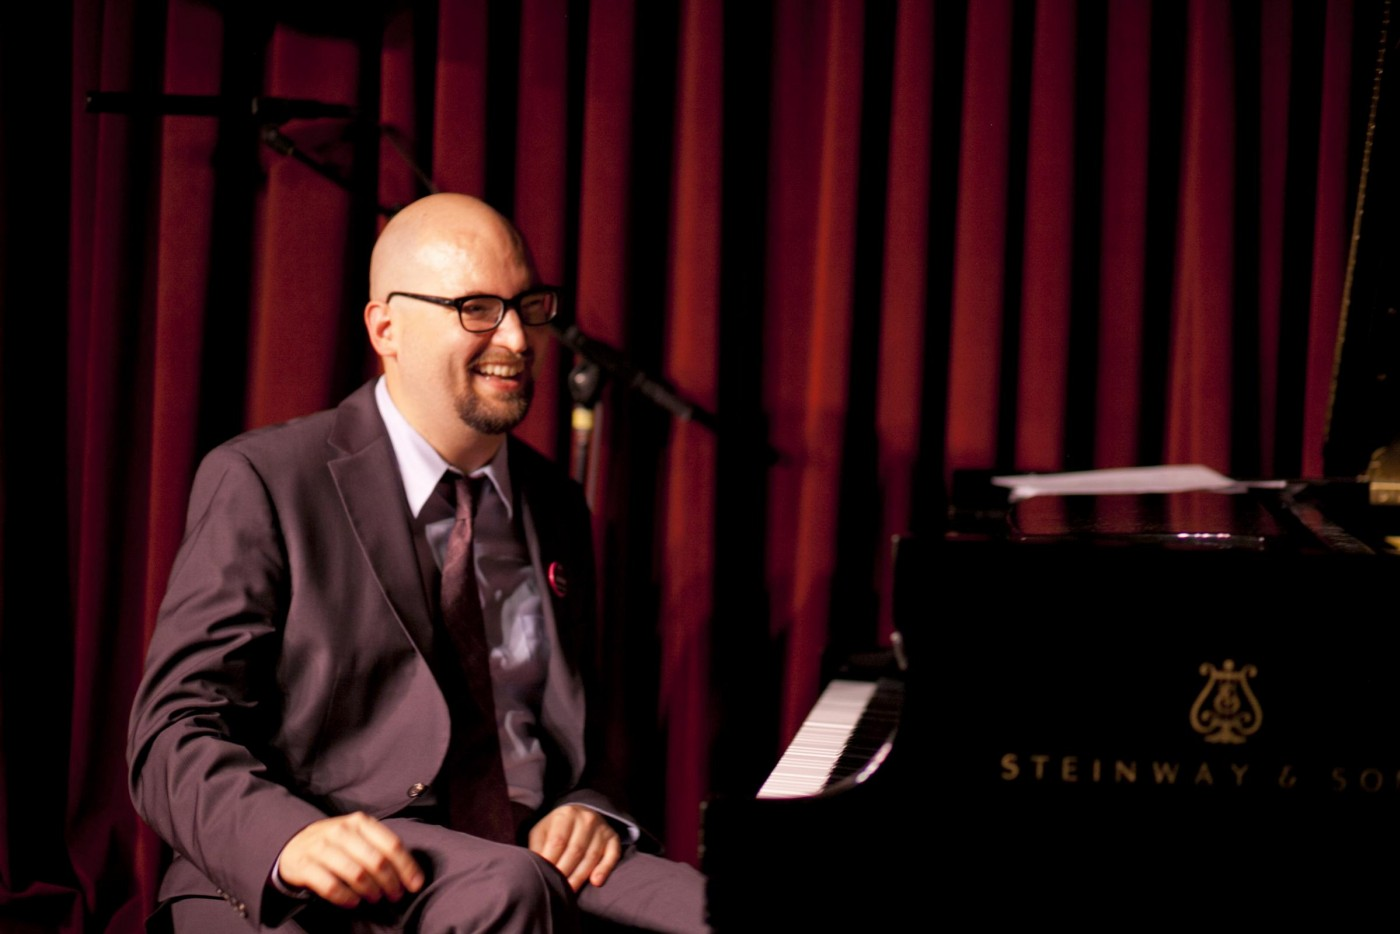 Ethan Iverson at the Village Vanguard